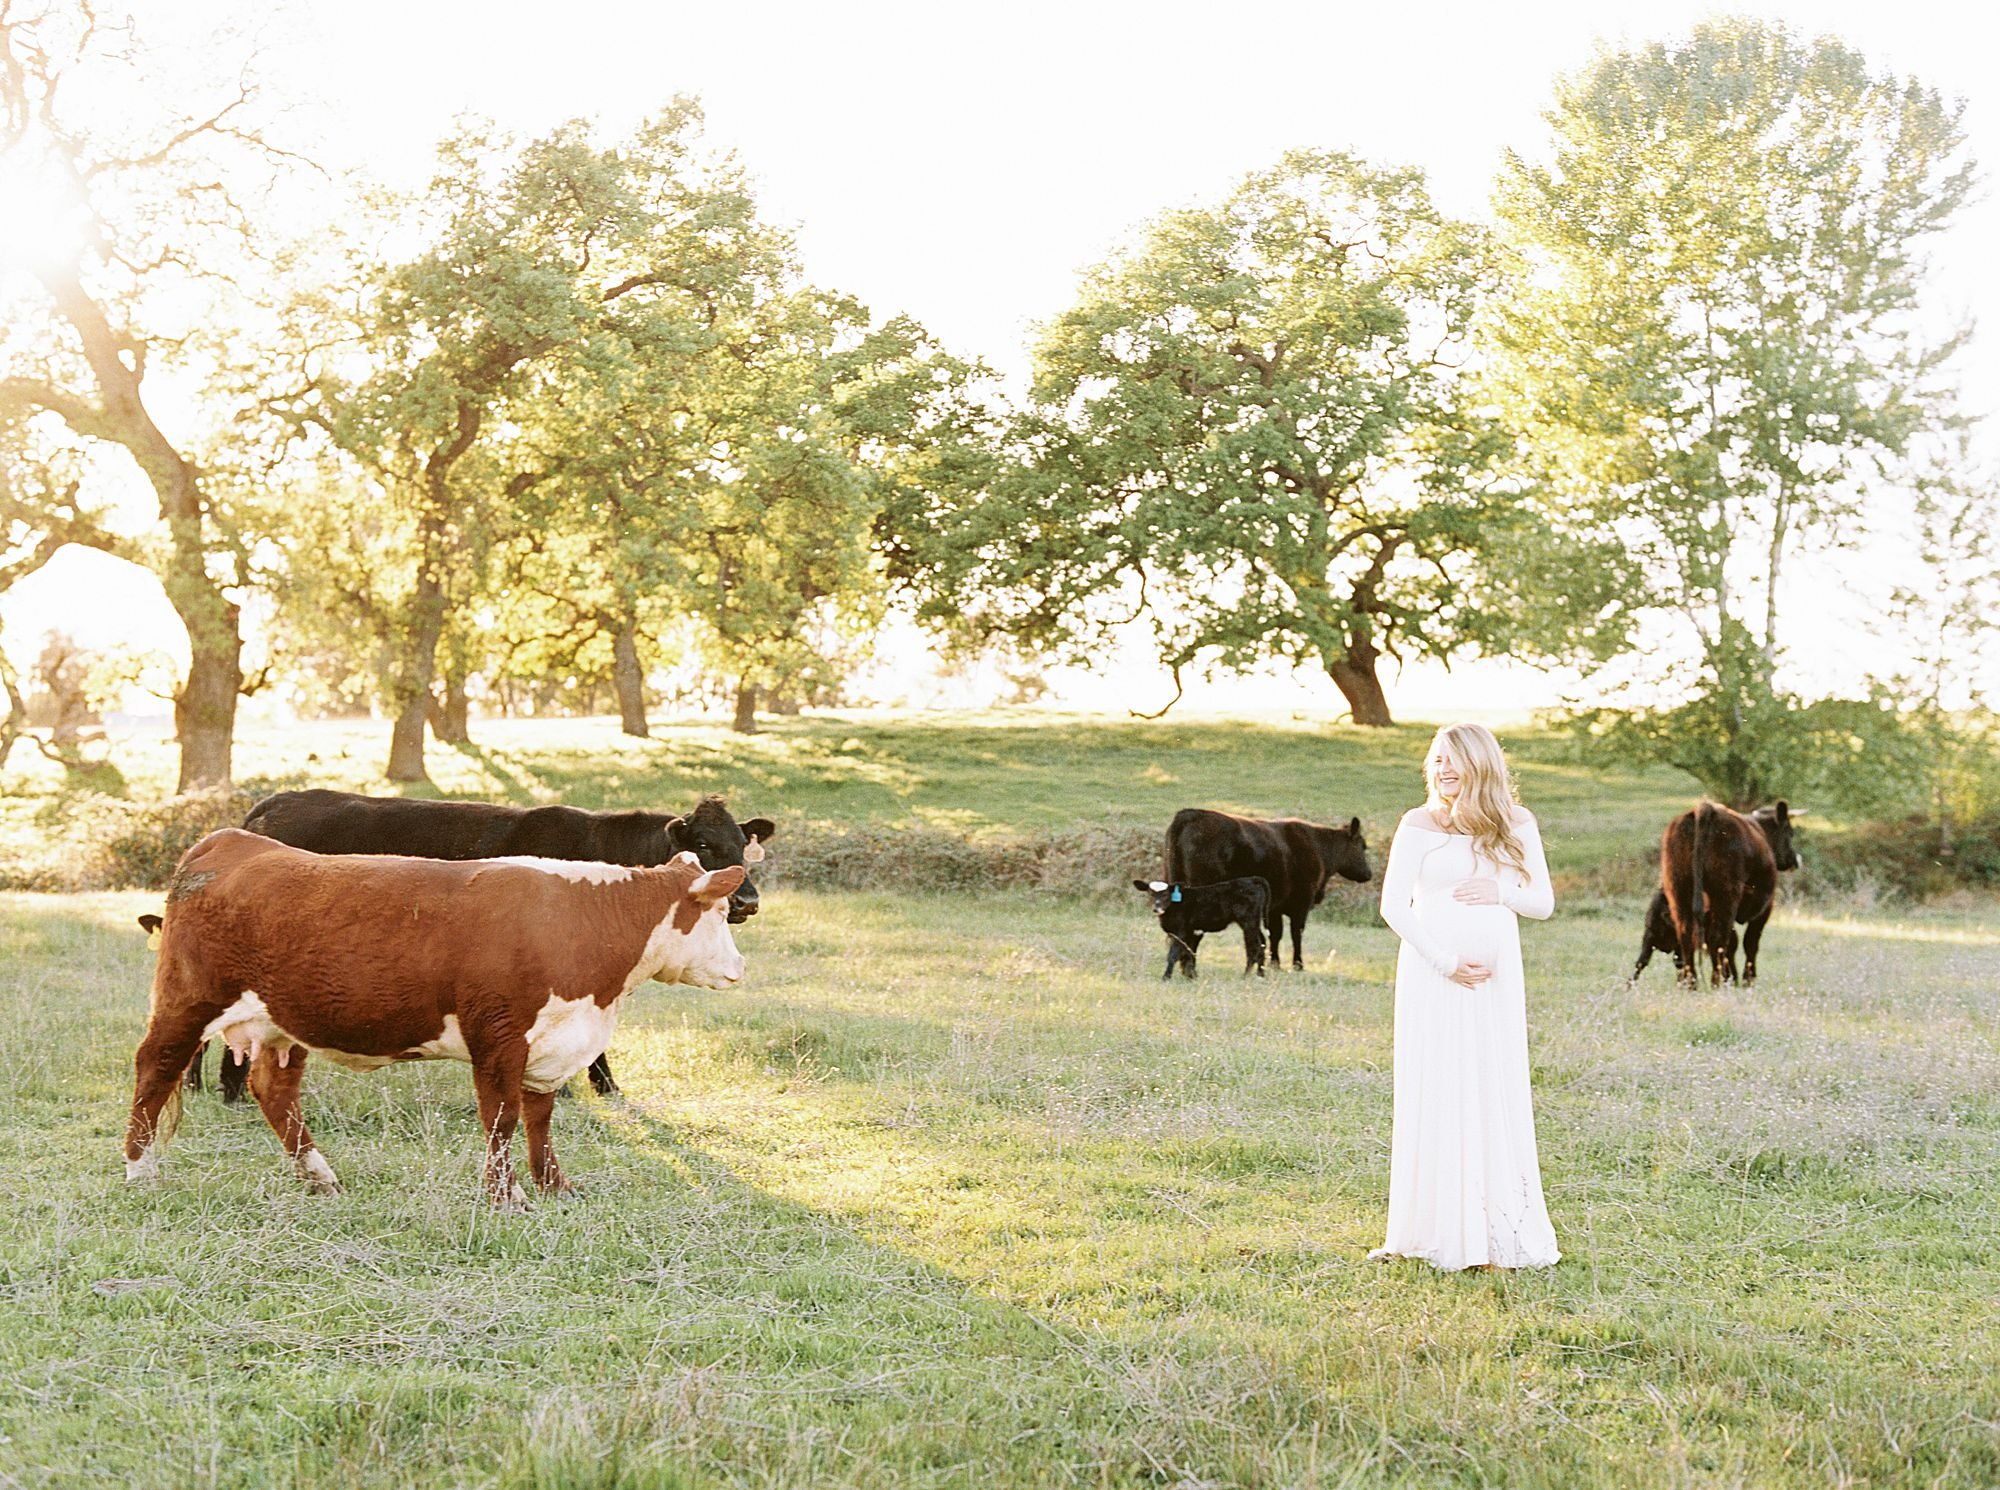 Sheridan Maternity Session - Lexie and Nick - Sacramento Maternity Photos by Ashley Baumgartner - Farmland, 4H Maternity with Cows_0012.jpg